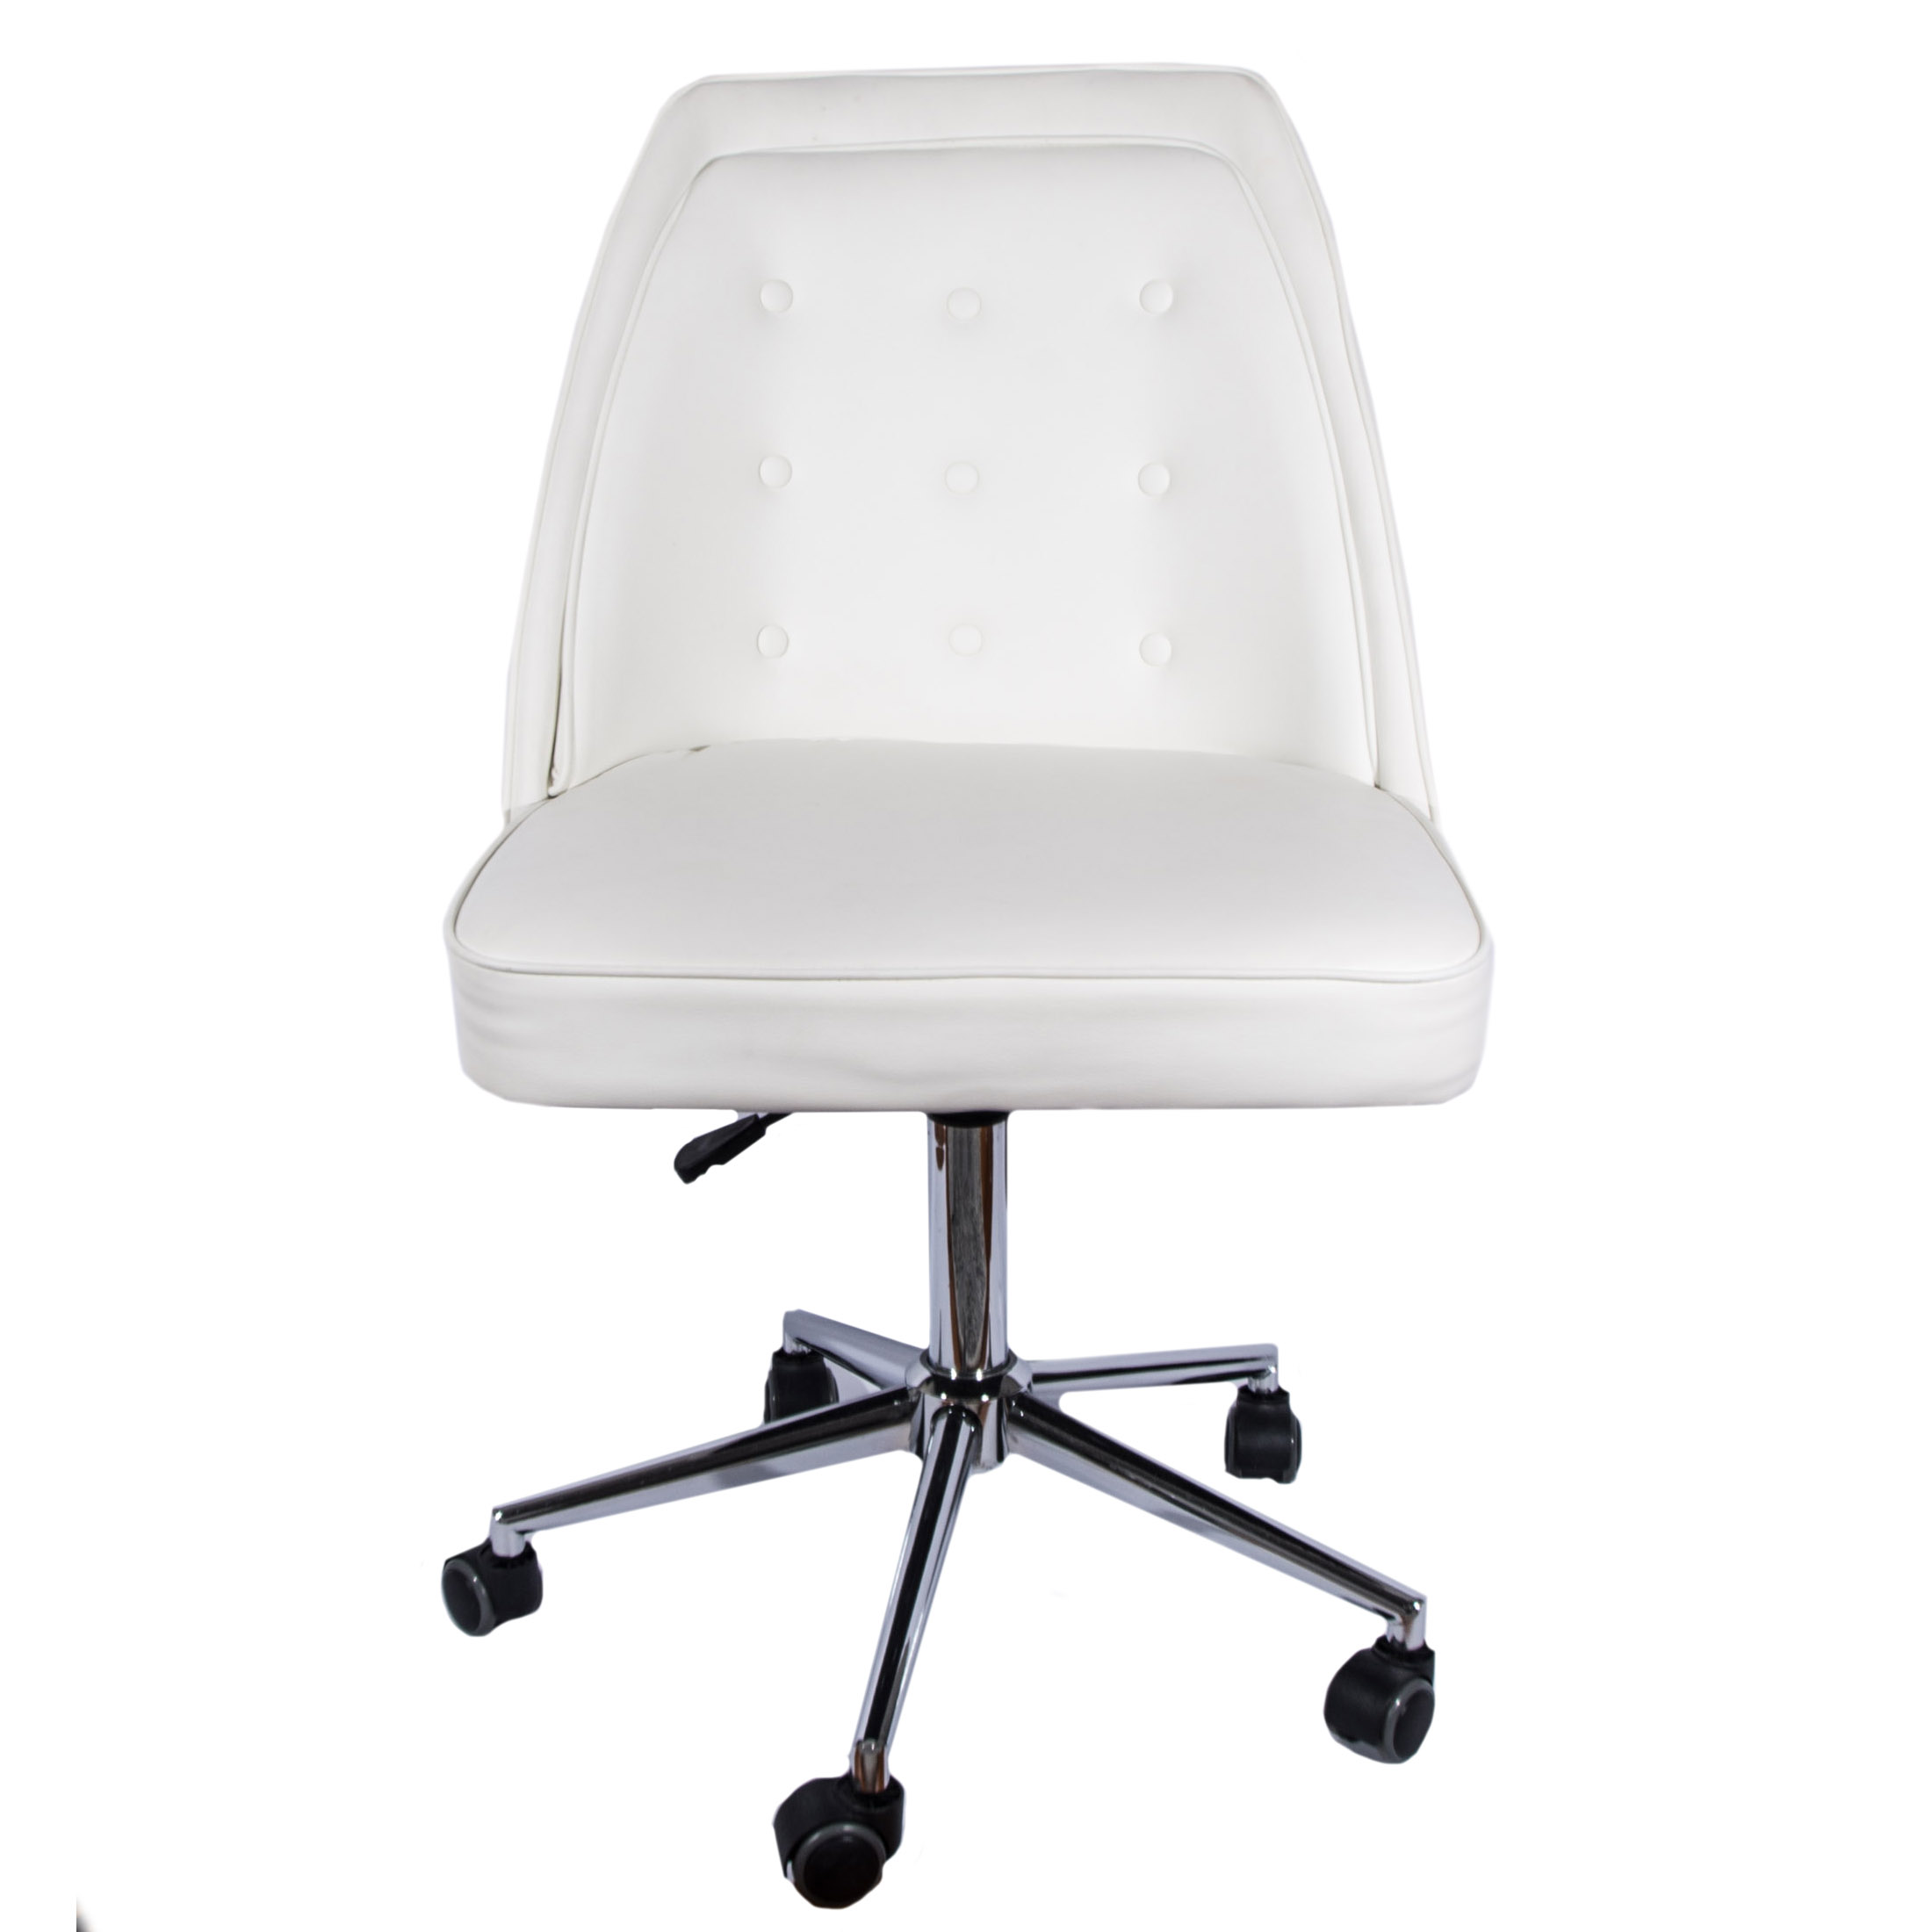 white rolling chair walmart patio cushions leather desk by tainoki ebth